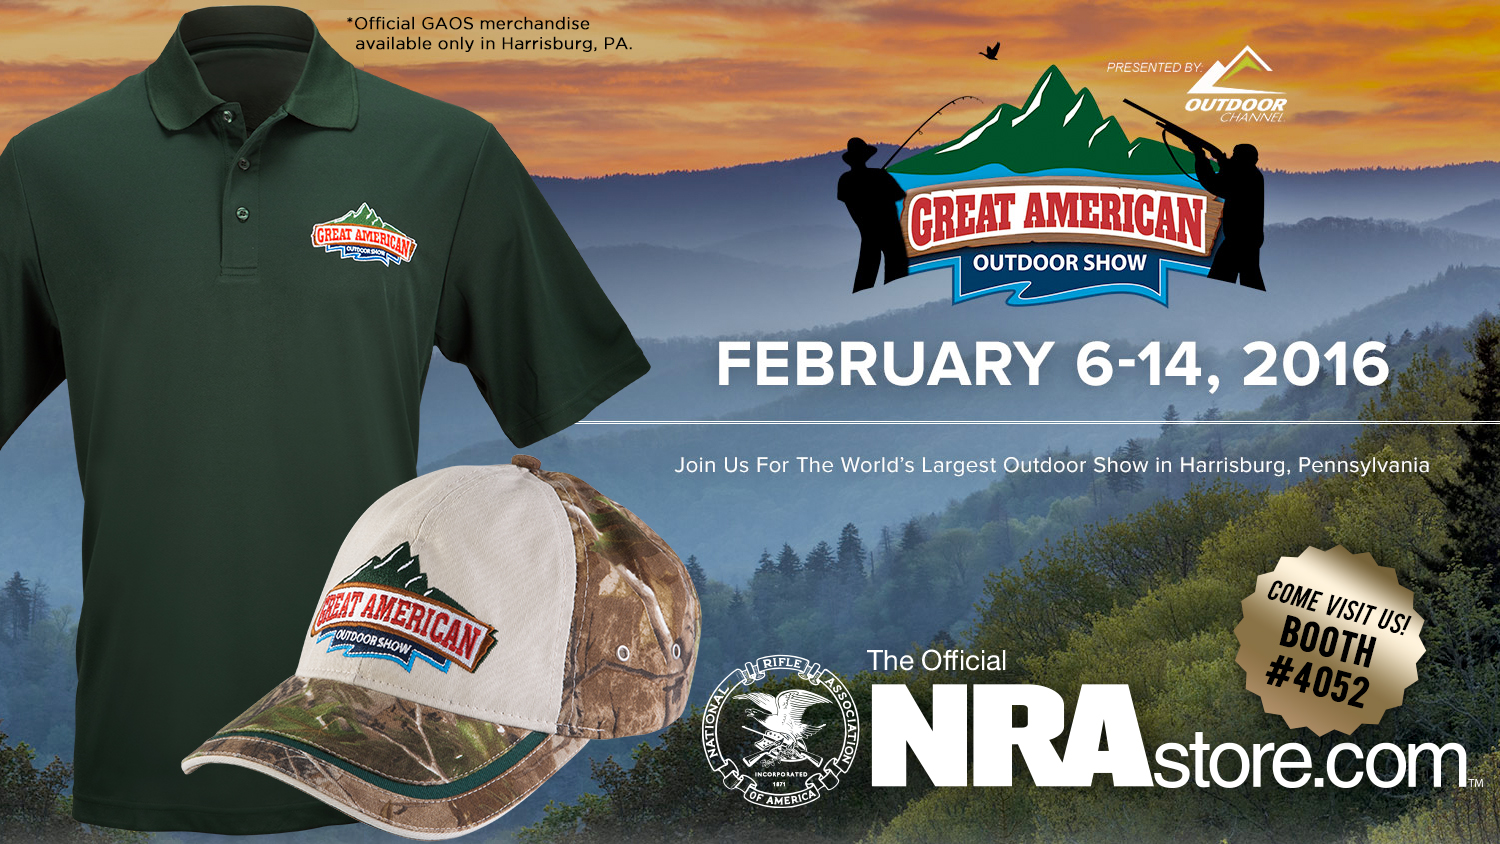 Get Your Great American Outdoor Show Gear at the NRA Store